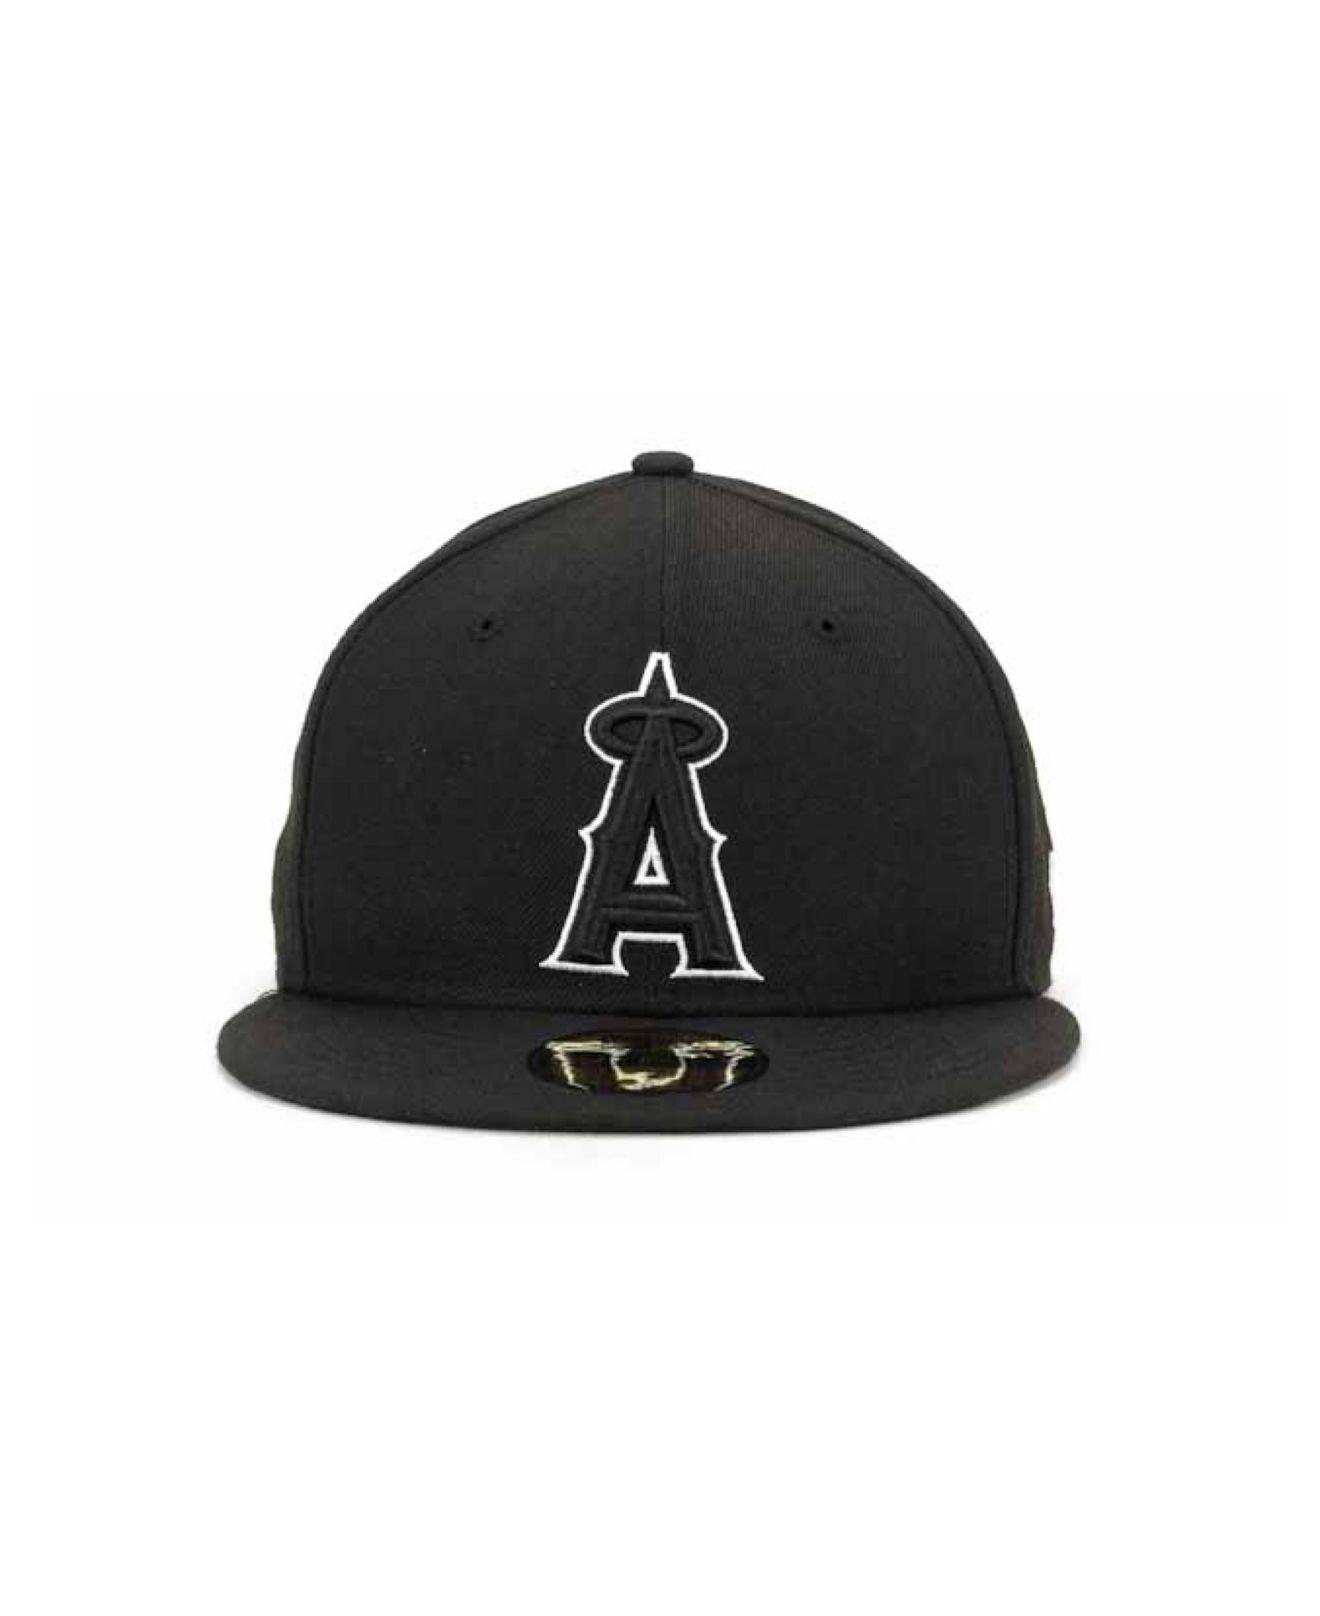 7034698014f ... red for men a76e5 4d131  coupon lyst ktz los angeles angels of anaheim  mlb black and white fashion 59fifty cap in